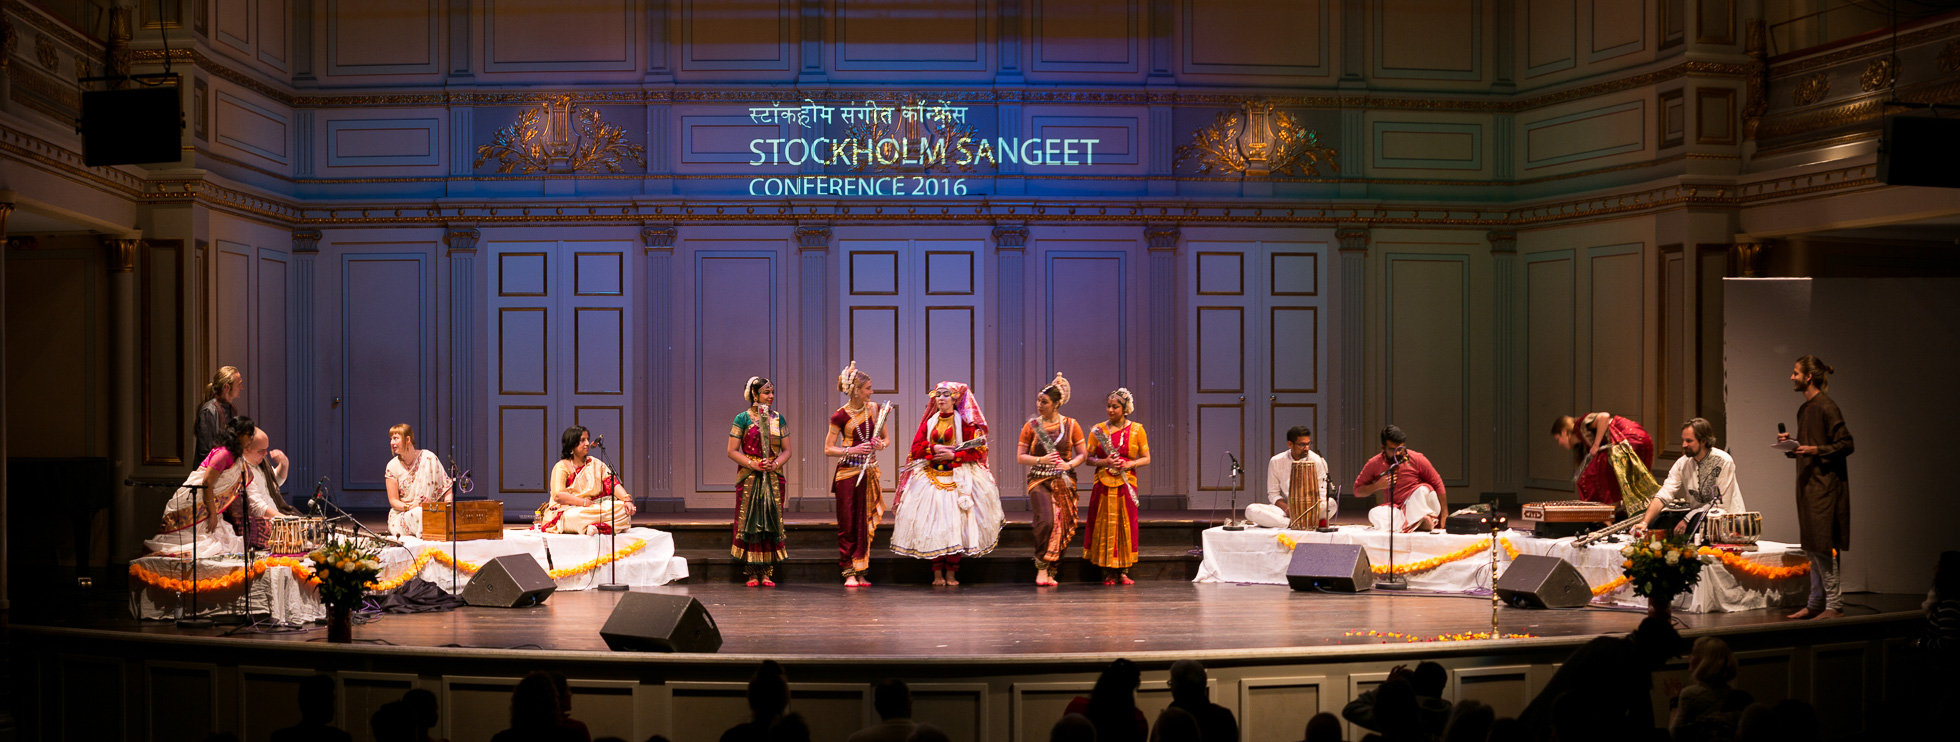 2016-10-16-stockholm-sangeet-conference-2016_2016-10-16_max-dahlstrand_0144